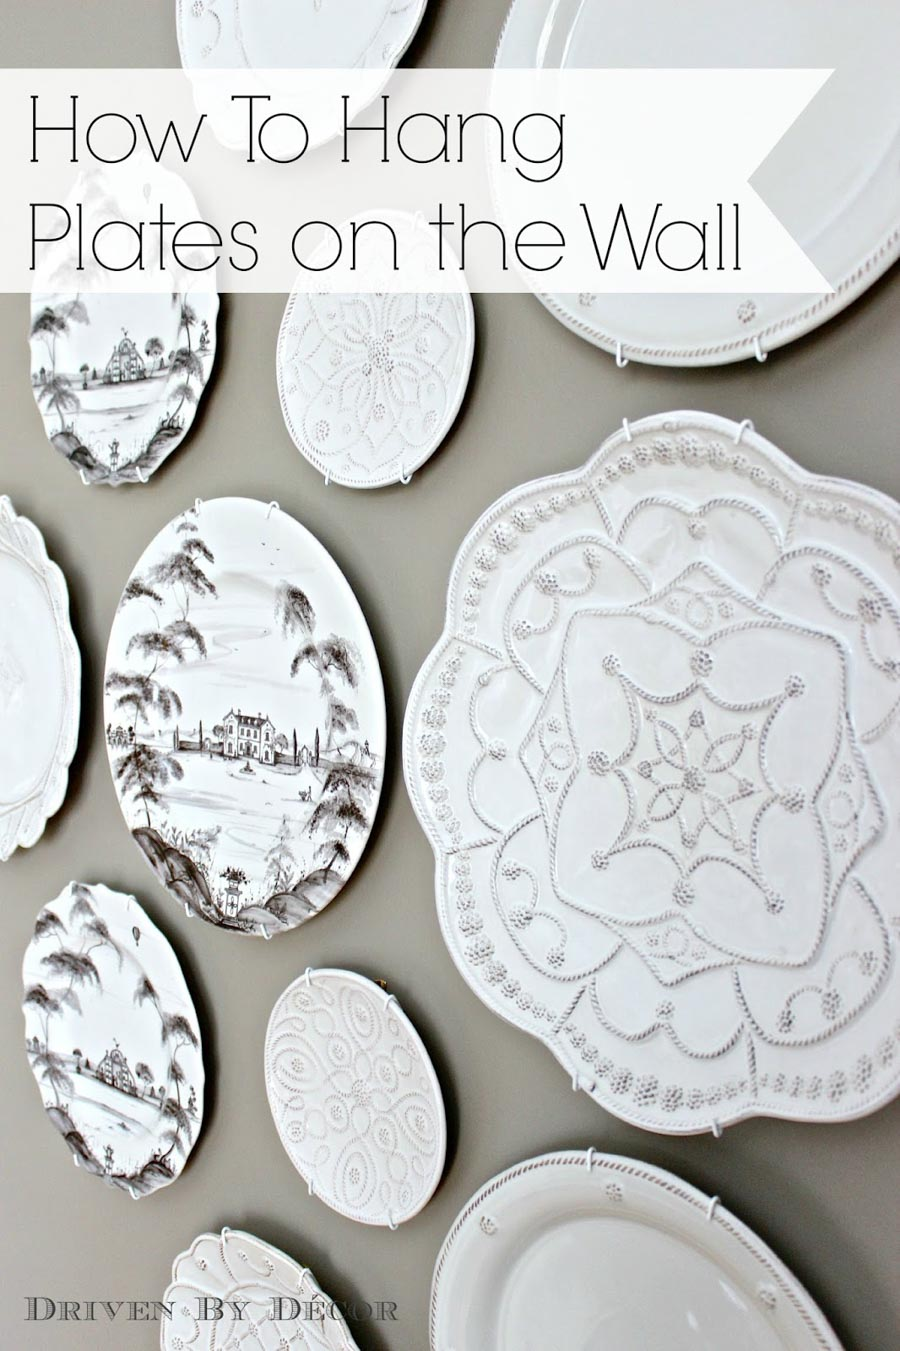 Glass Plate Hanger How To Hang Plates On The Wall The Best Hangers More Driven